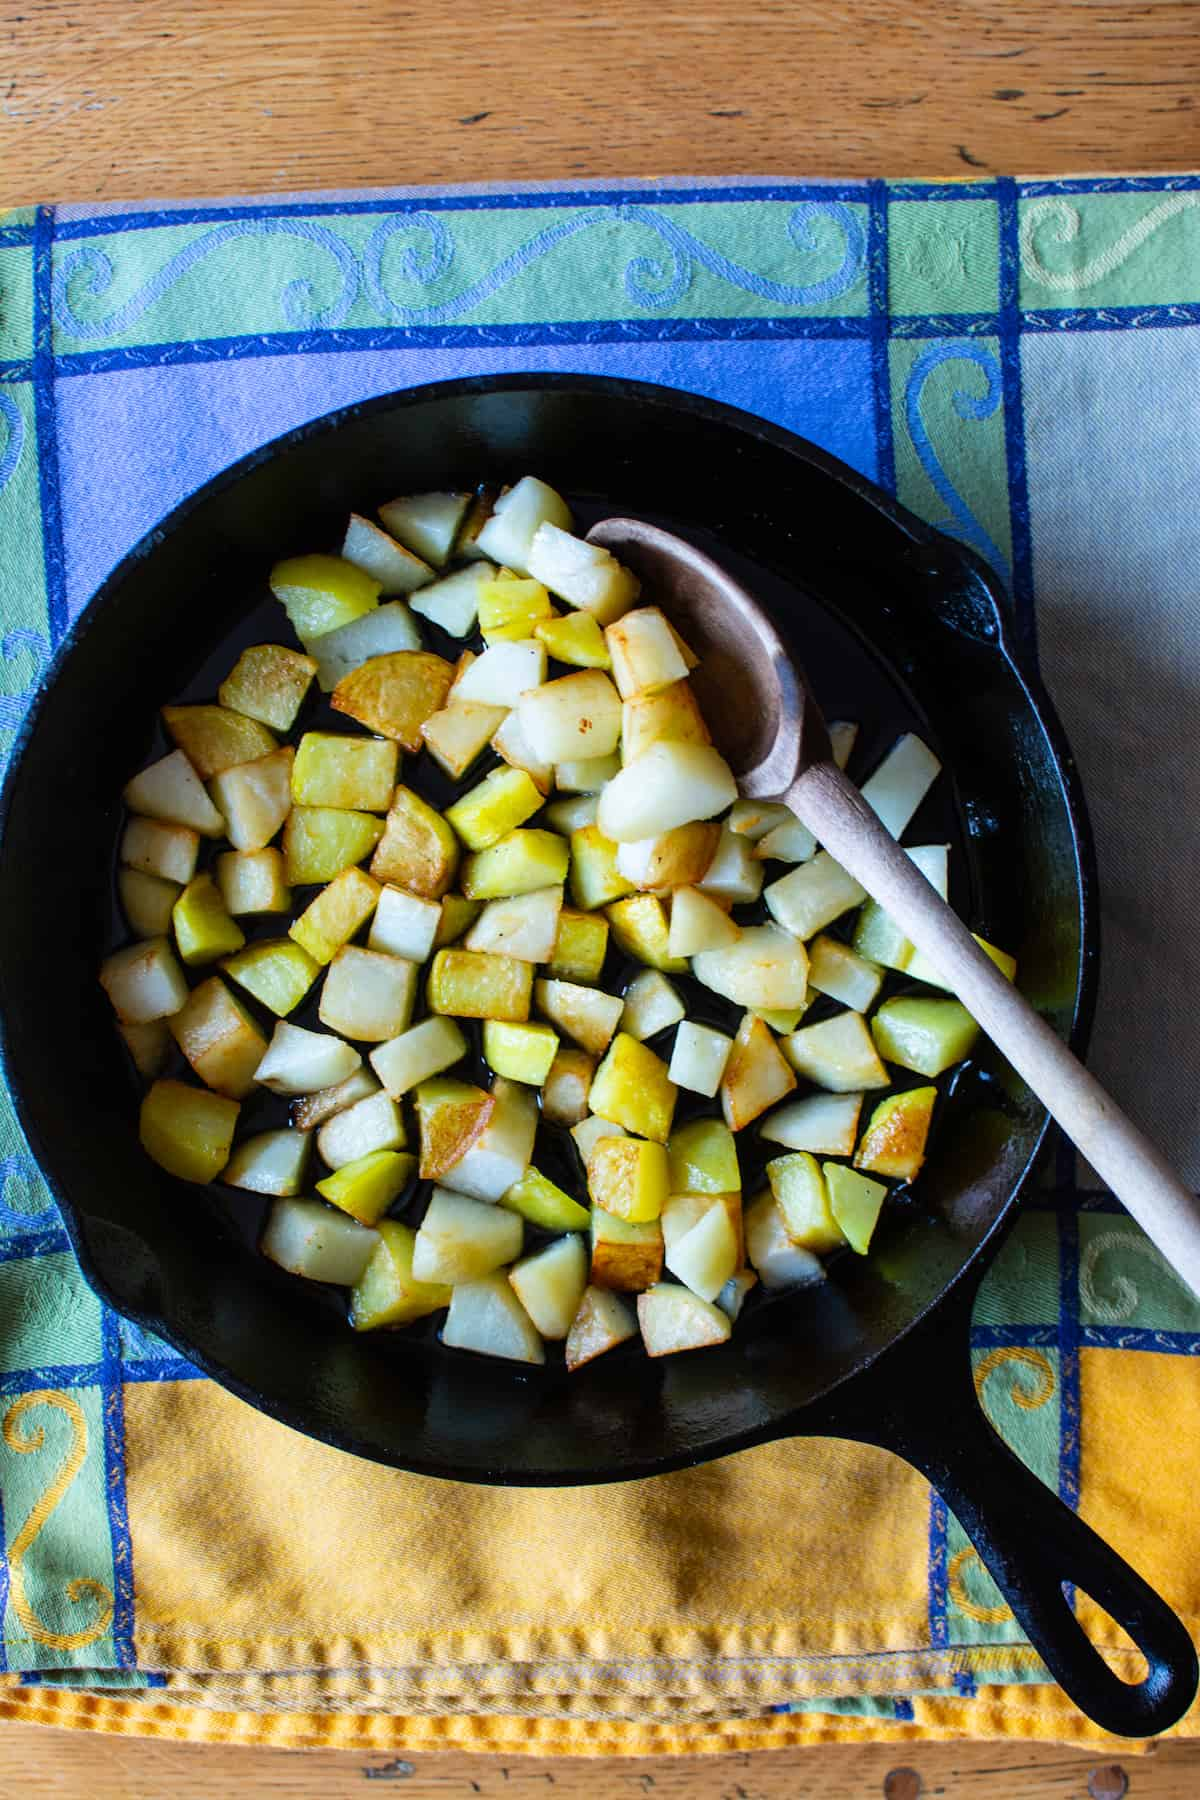 Crispy fried potatoes in a black cast iron skillet with a wooden spoon in the pan. The pan is sitting on a blue and green tablecloth.